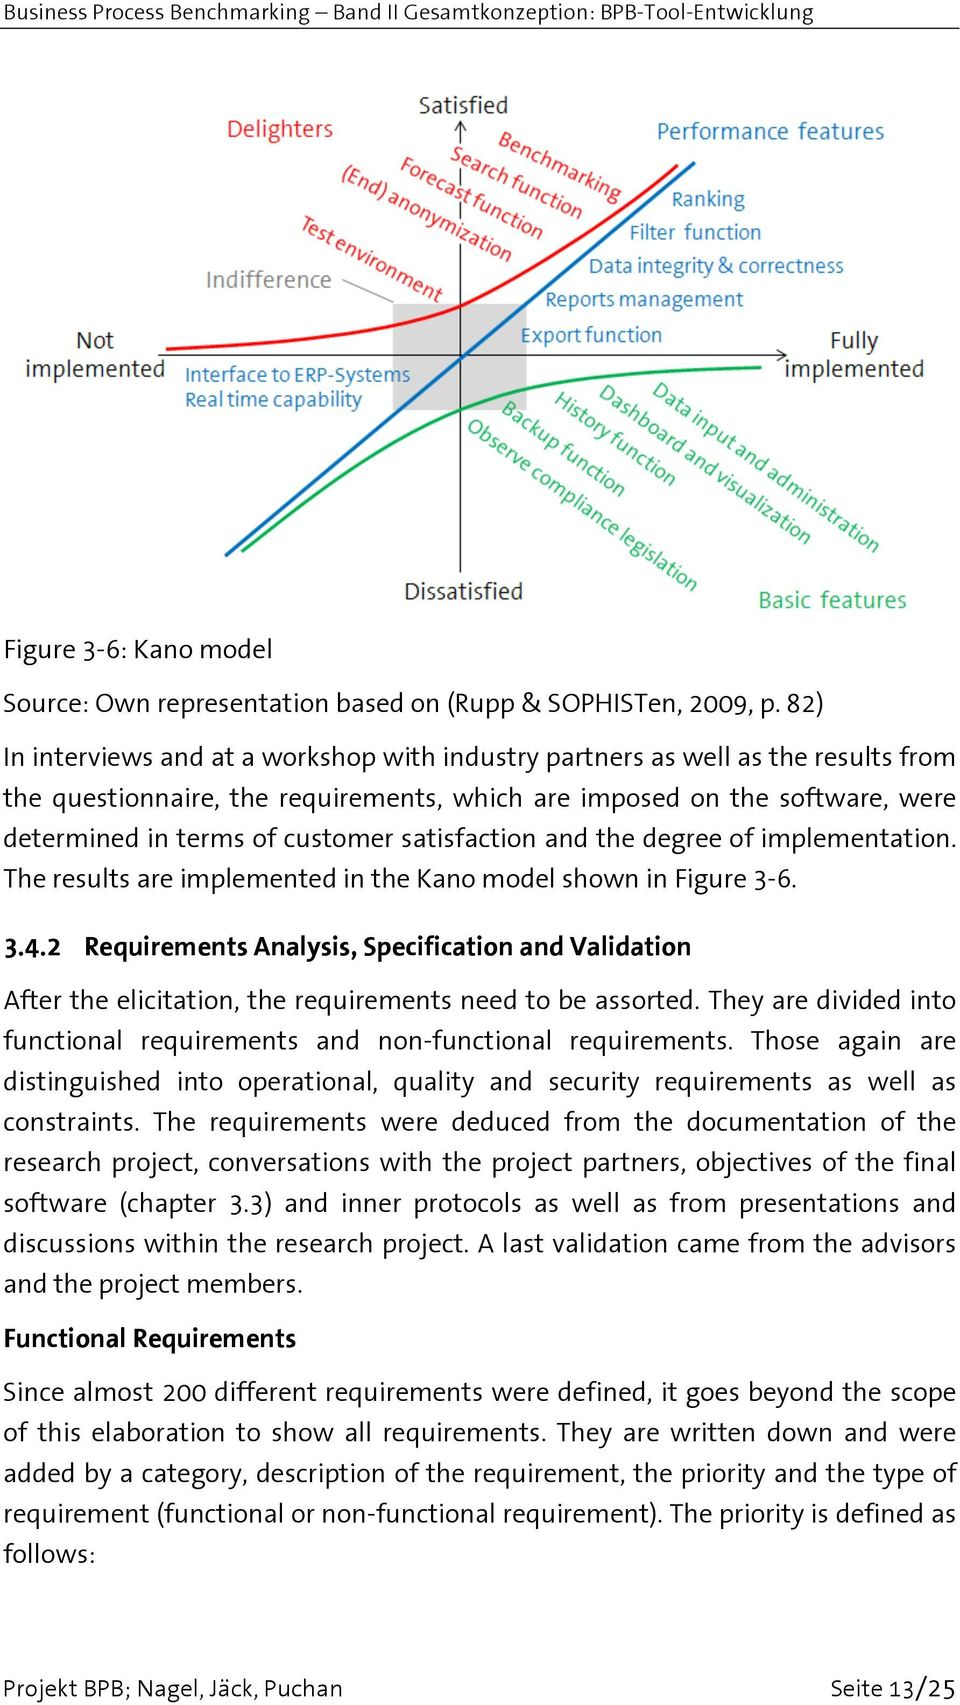 satisfaction and the degree of implementation. The results are implemented in the Kano model shown in Figure 3-6. 3.4.